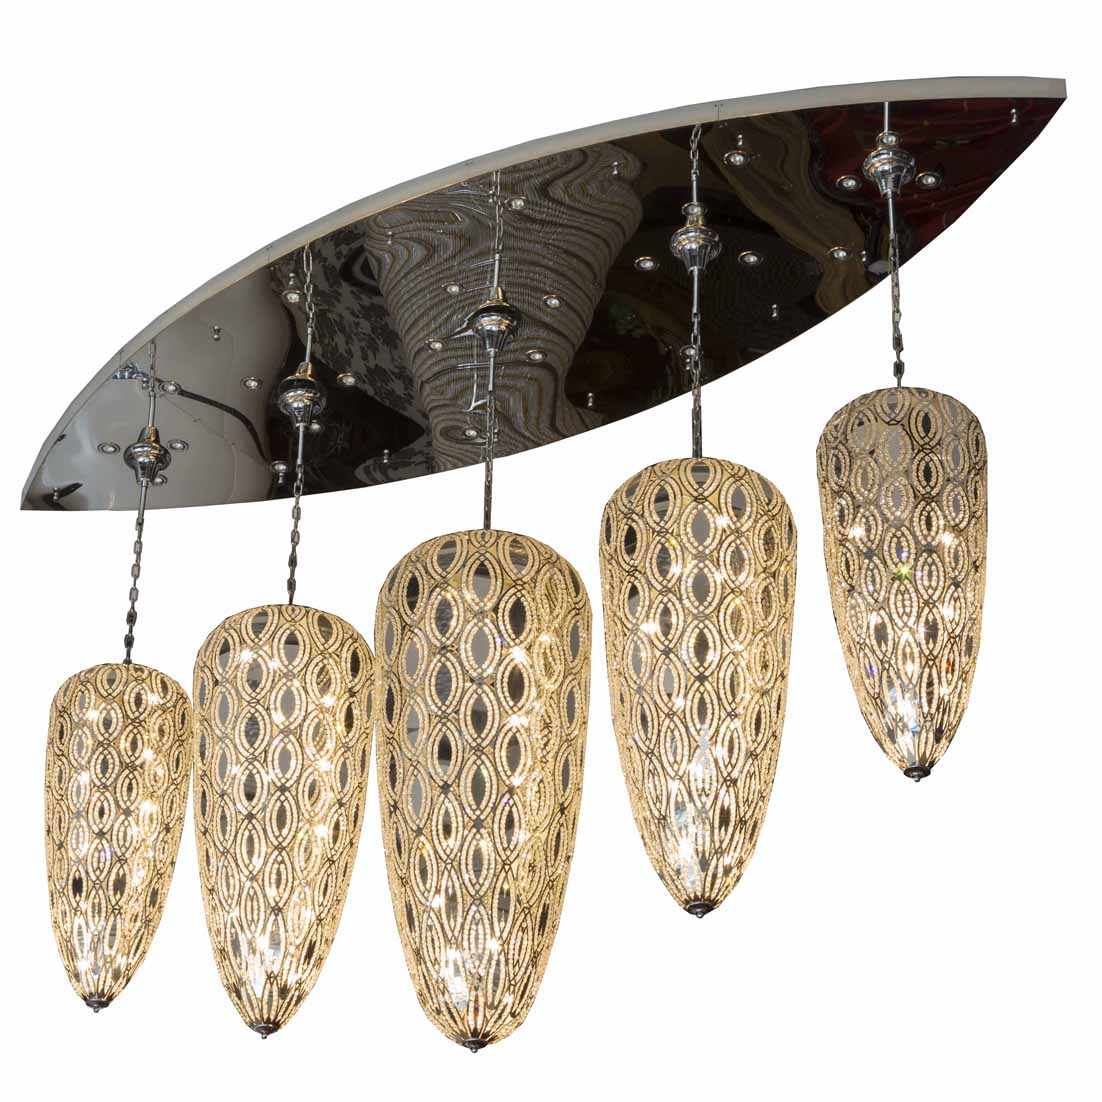 EME modern elegant dining room chandelier chandelier EME LIGHTING Brand